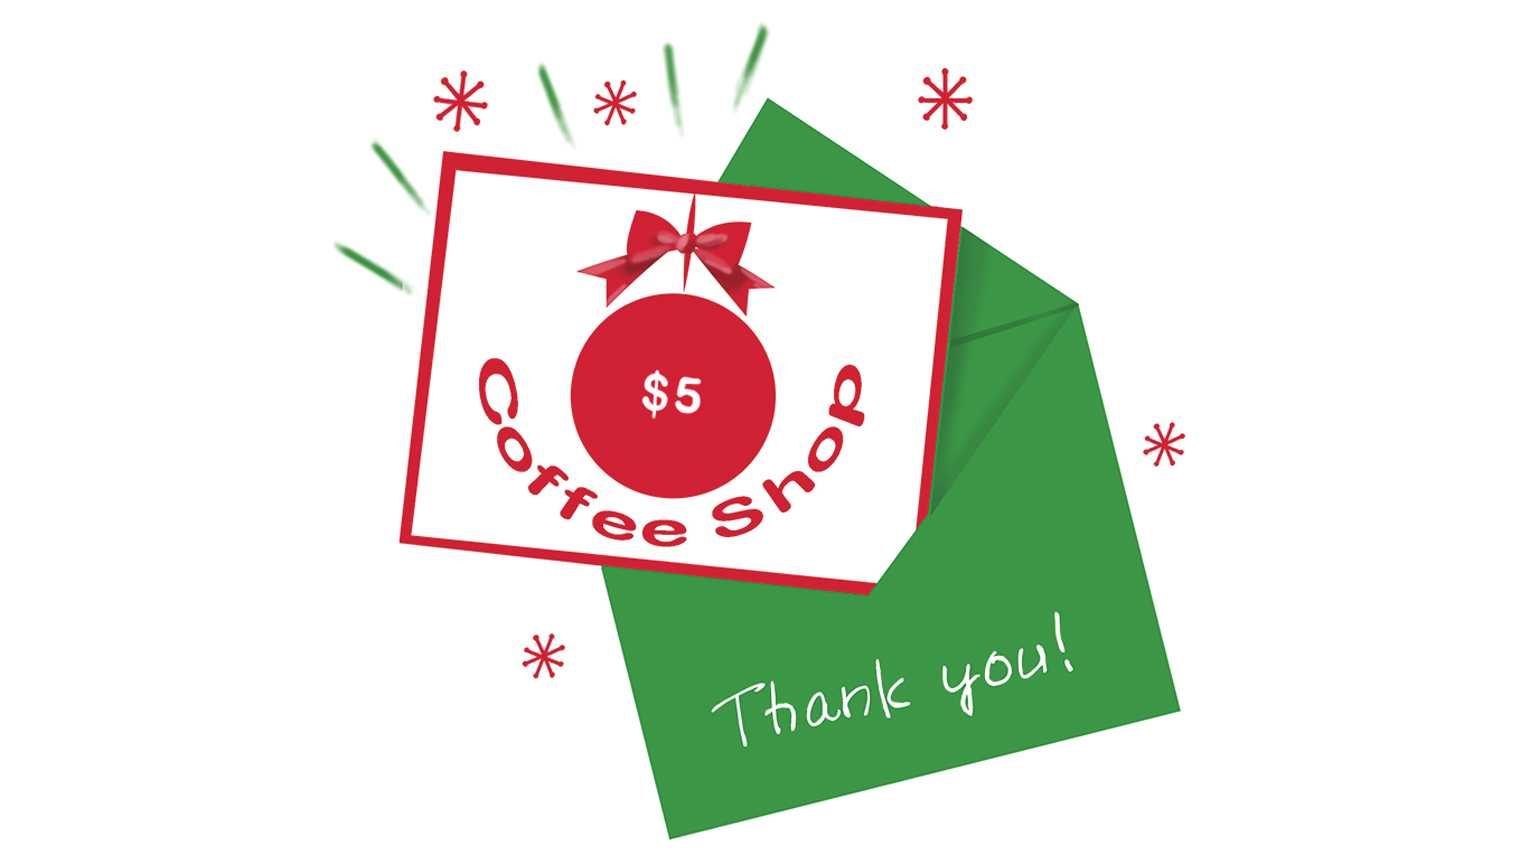 A coffee shop coupon inside a thank you envelope; Illustration by Coco Masuda